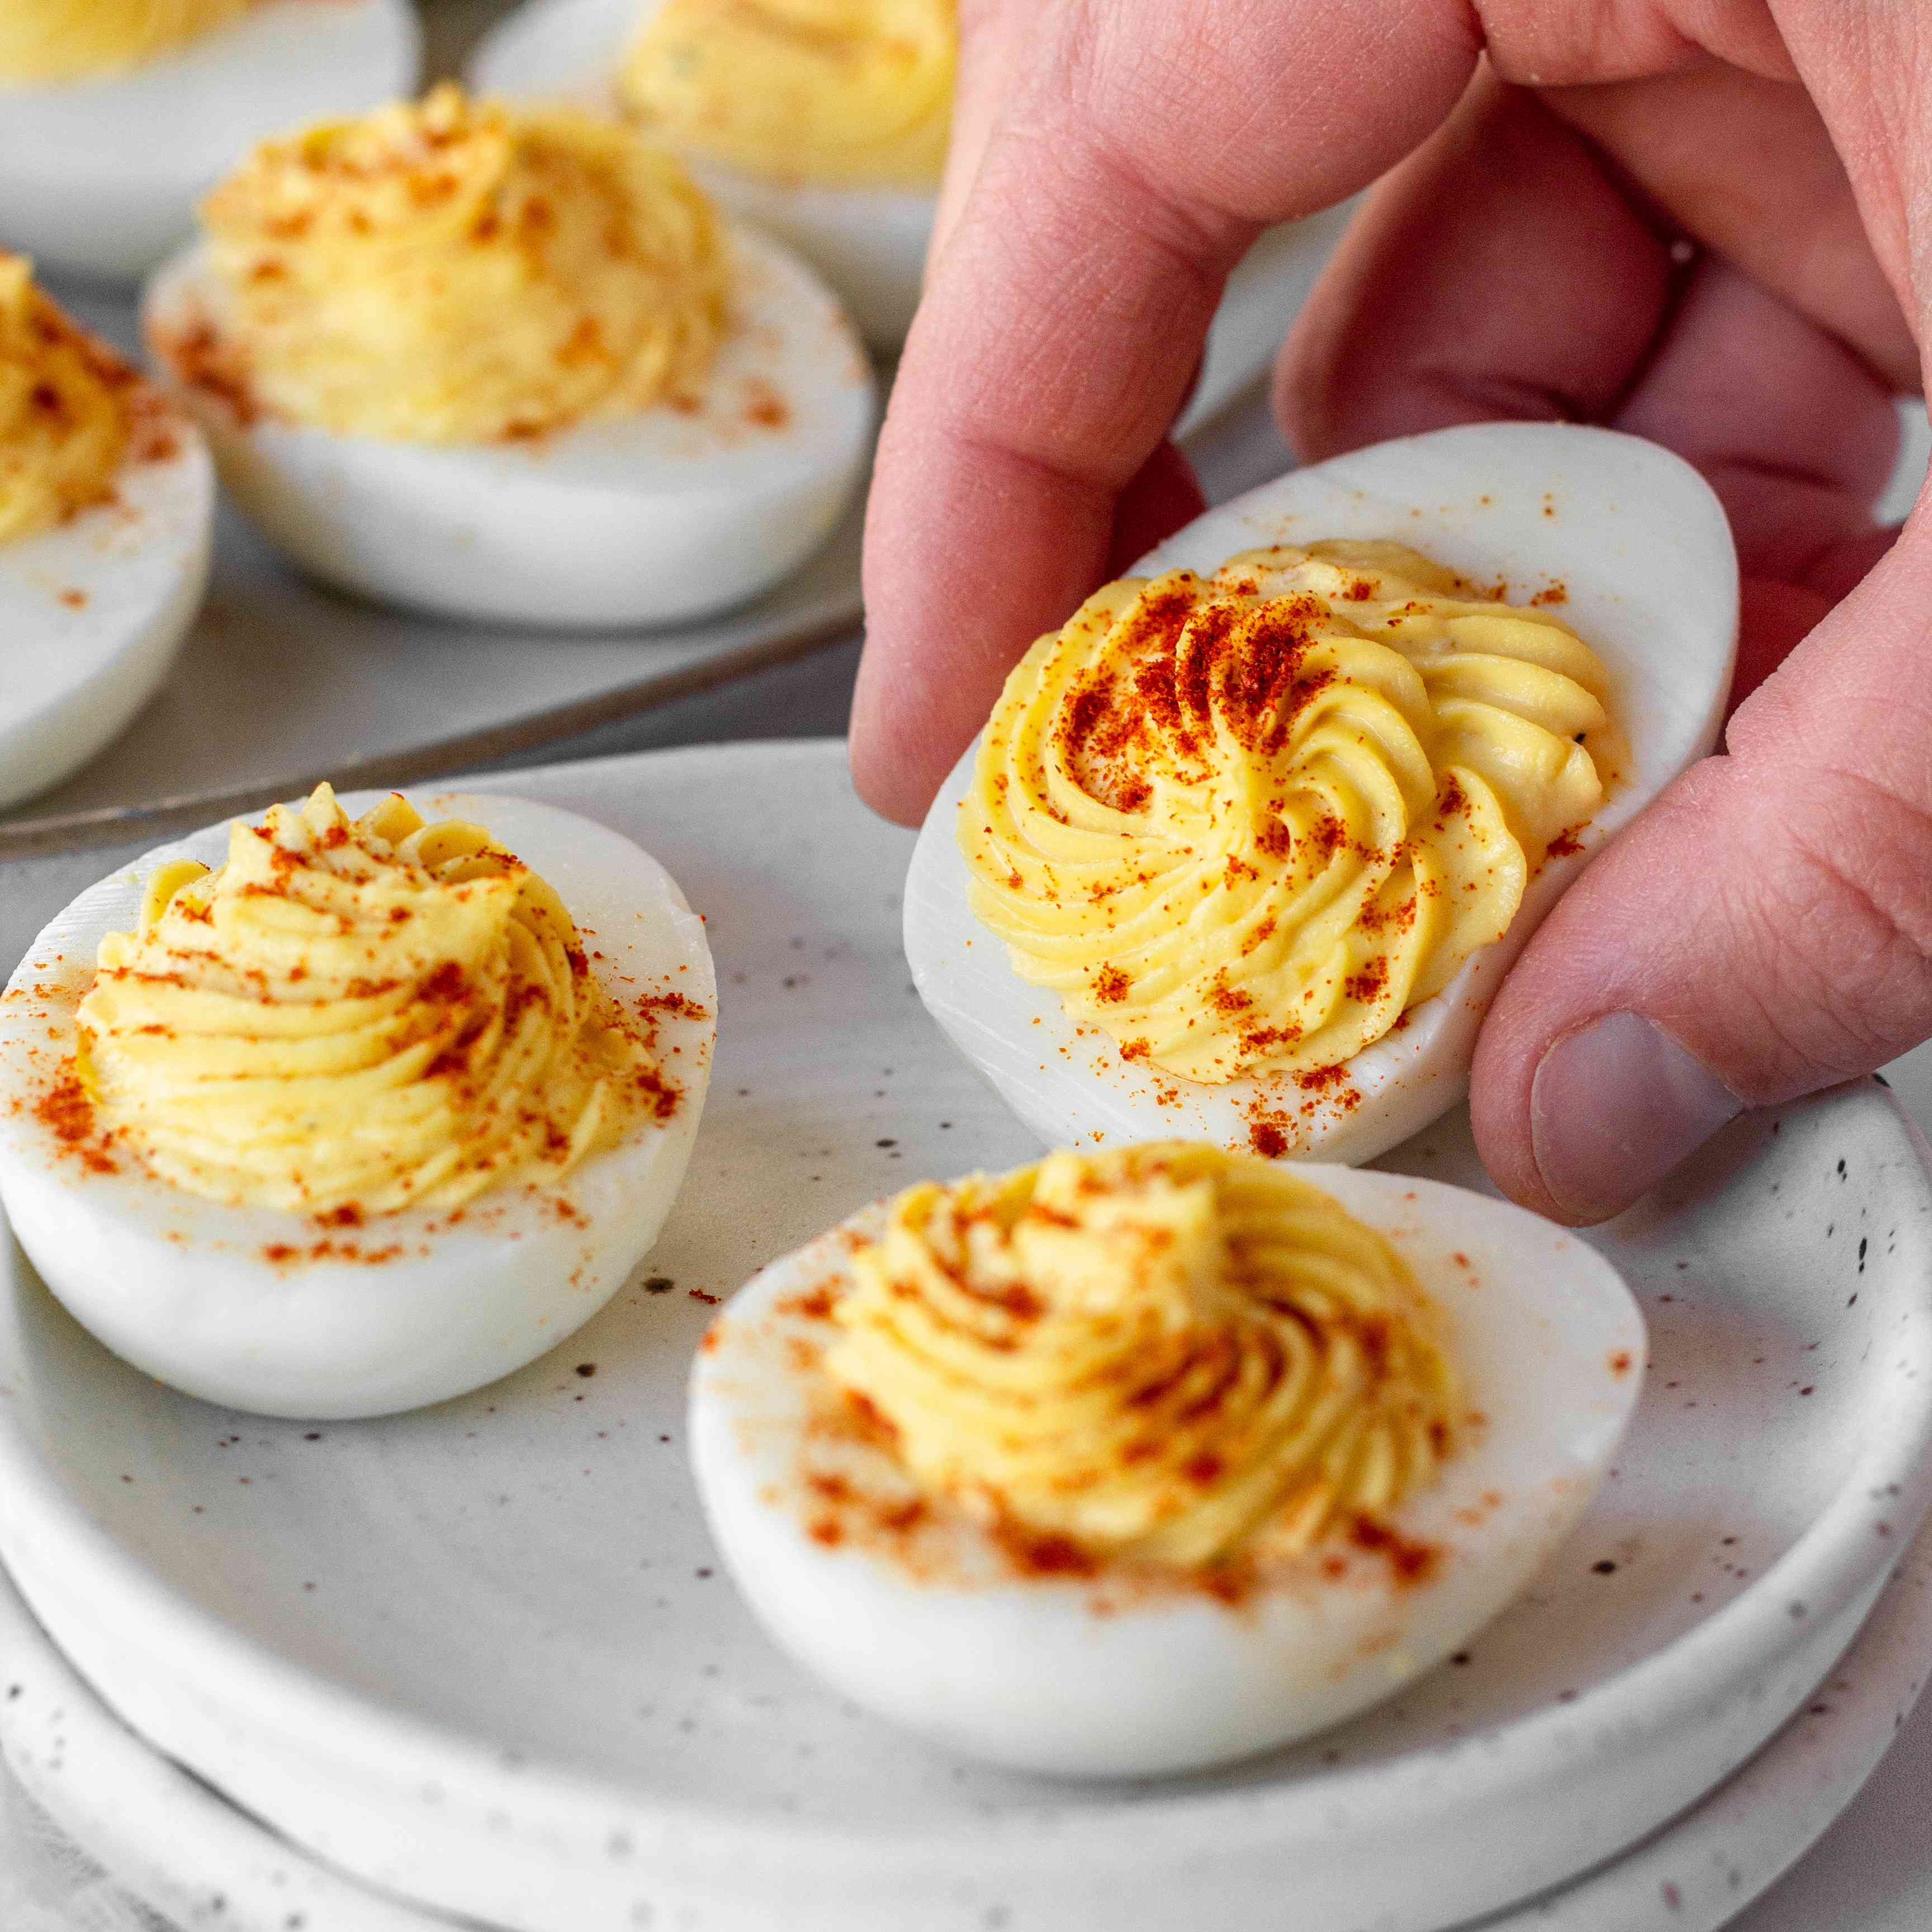 A hand picking up a Classic Deviled Egg off a small plate.